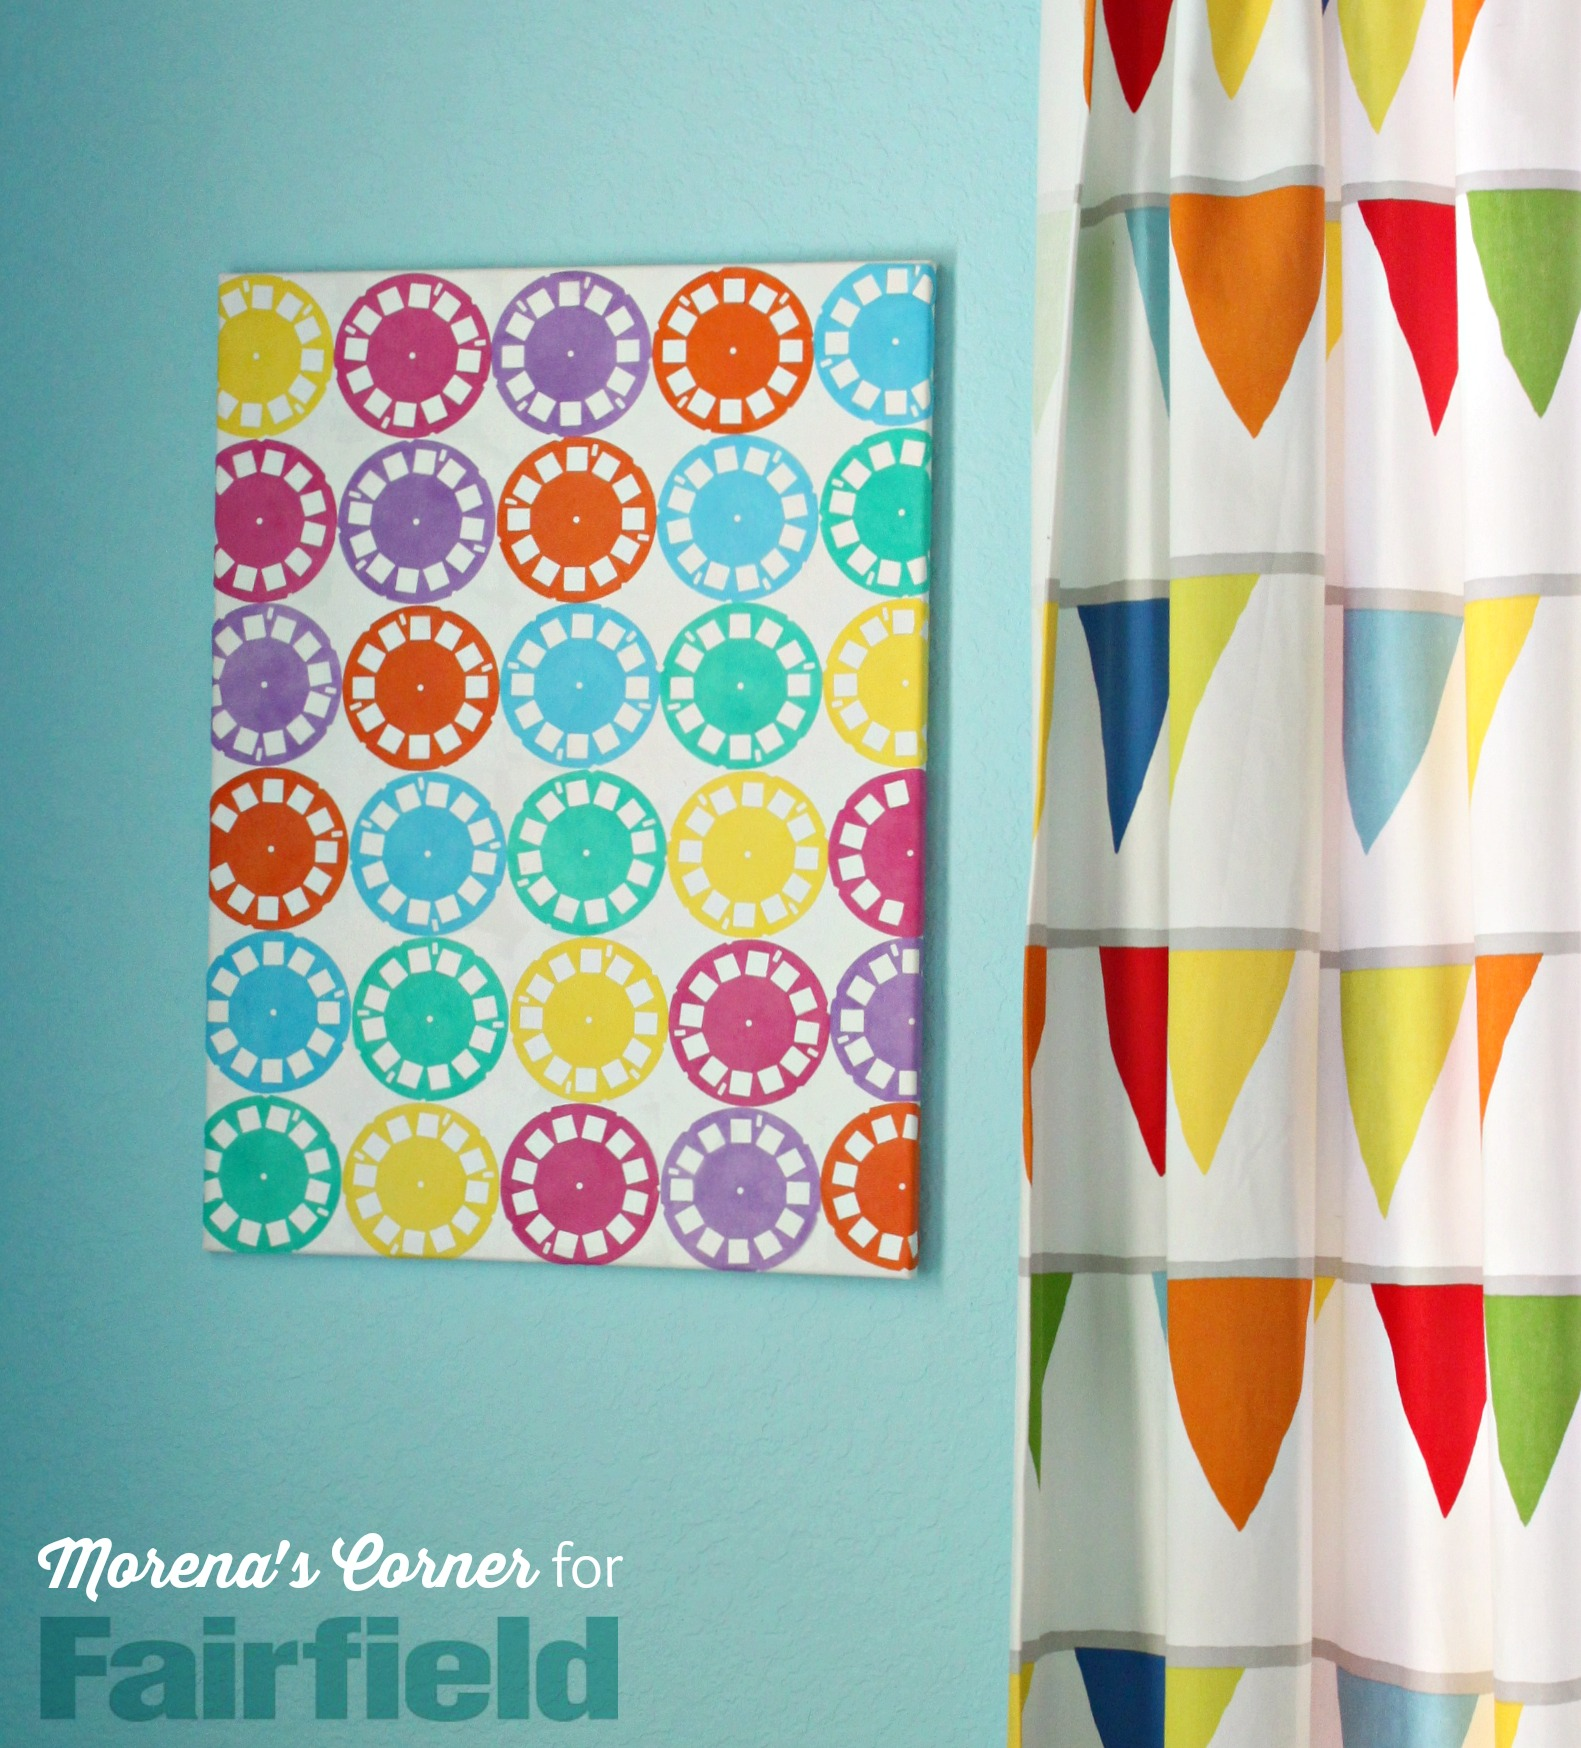 Colorful Wall Art Made With Oly*Fun Fabric